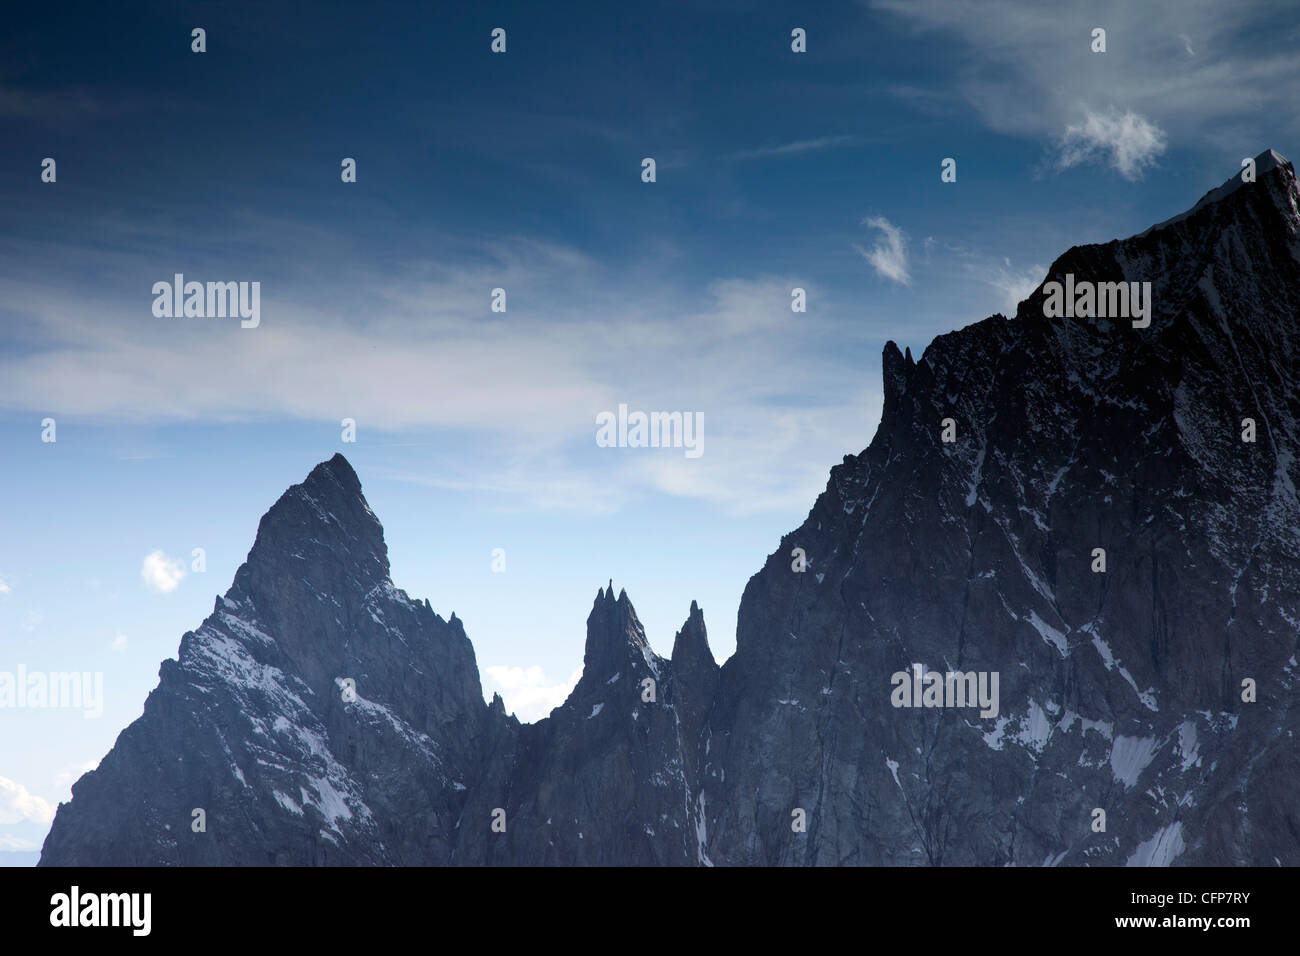 Mont Blanc Massif, Courmayeur, Val d'Aosta, Italy, Europe - Stock Image